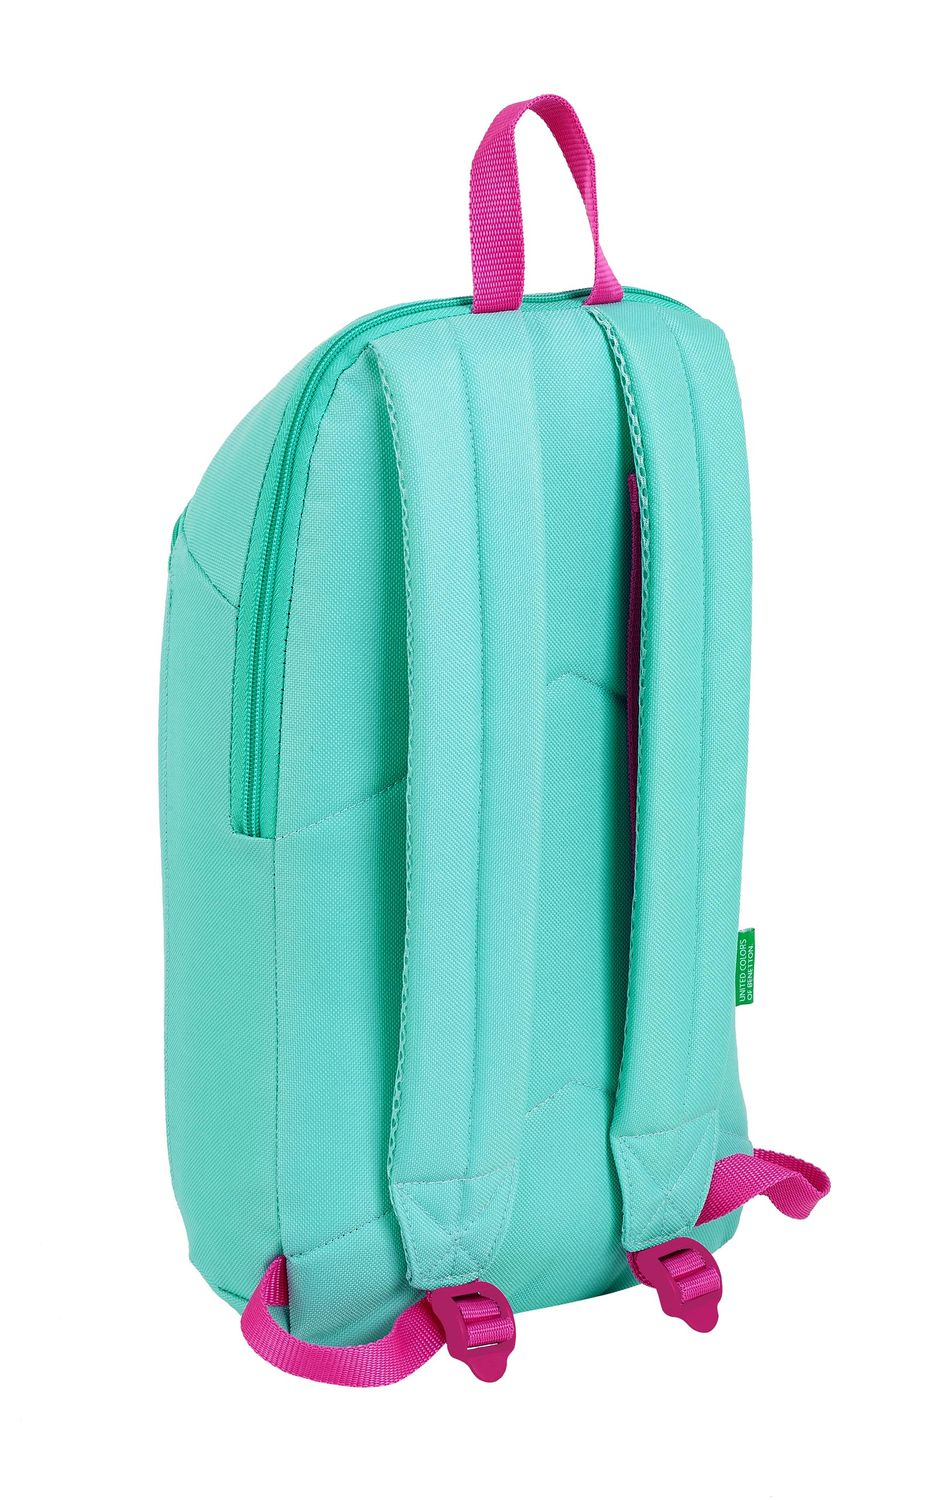 BENETTON GIRL Backpack Rucksack 39cm – image 2